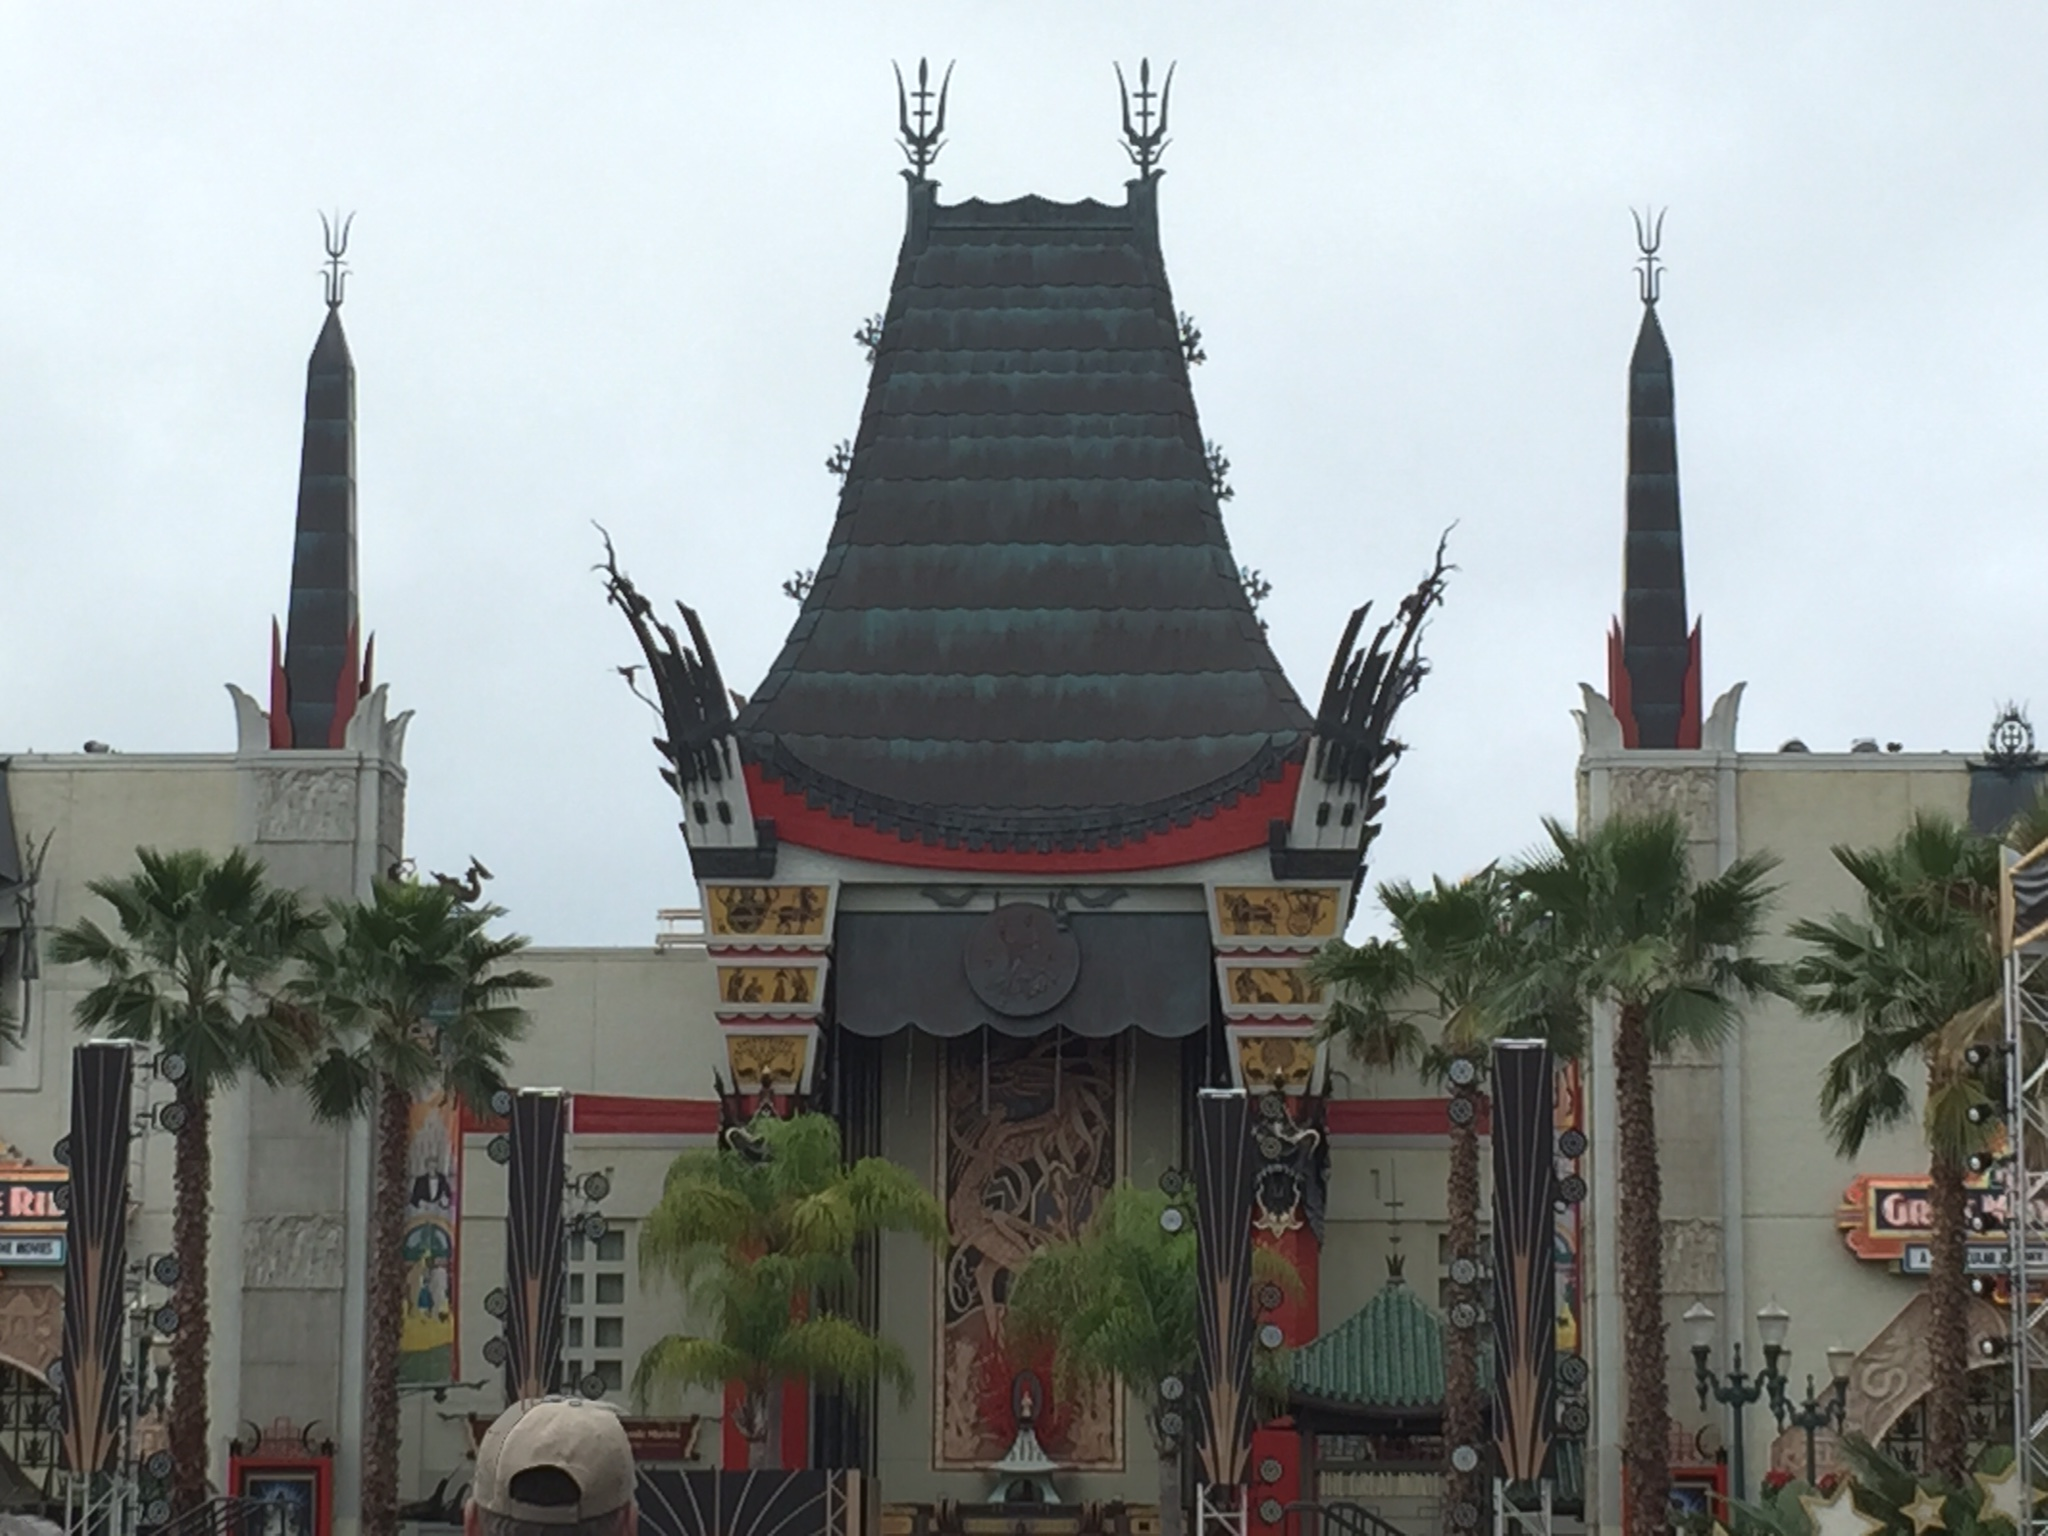 Wordless Wednesday: An Icon for Disney's Hollywood Studios?